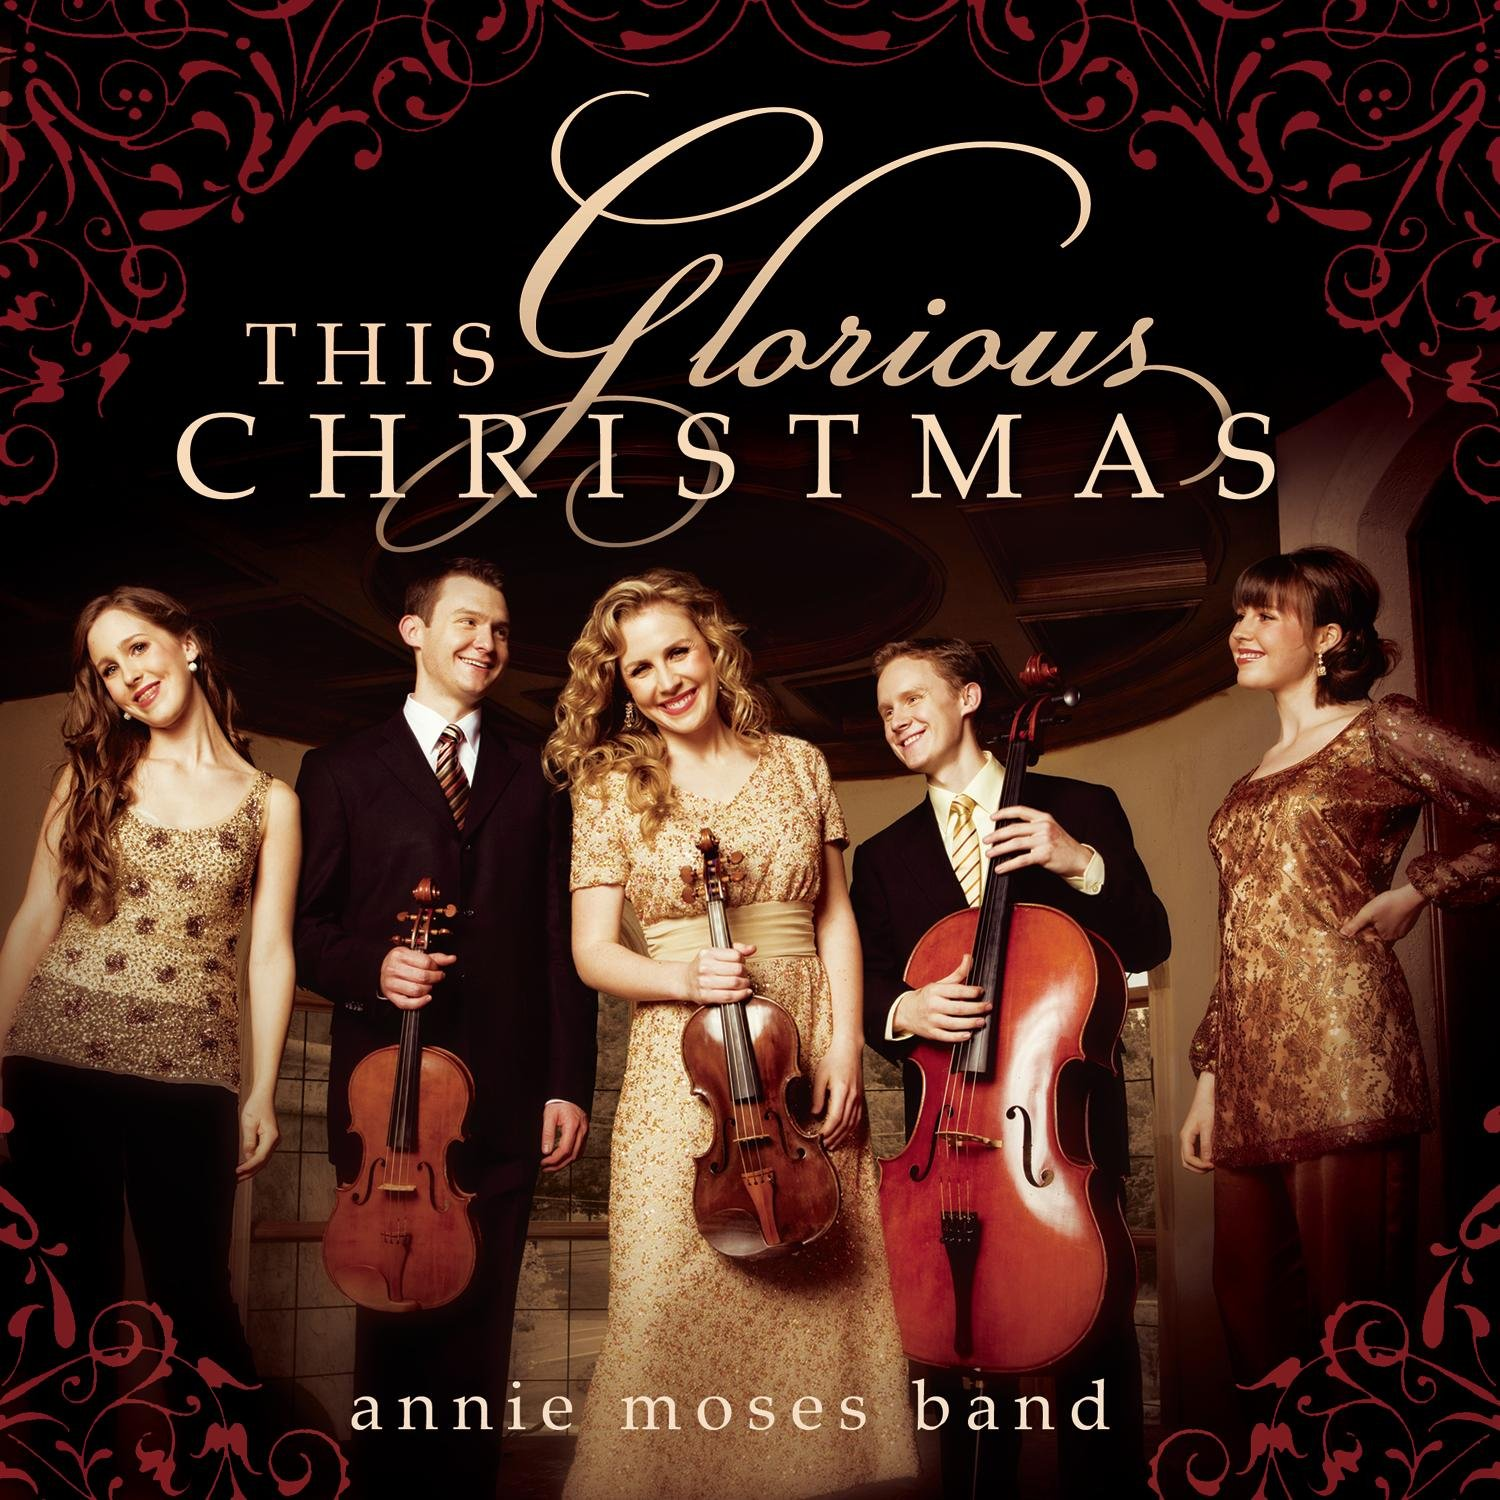 Annie Moses Band - This Glorious Christmas - Amazon.com Music